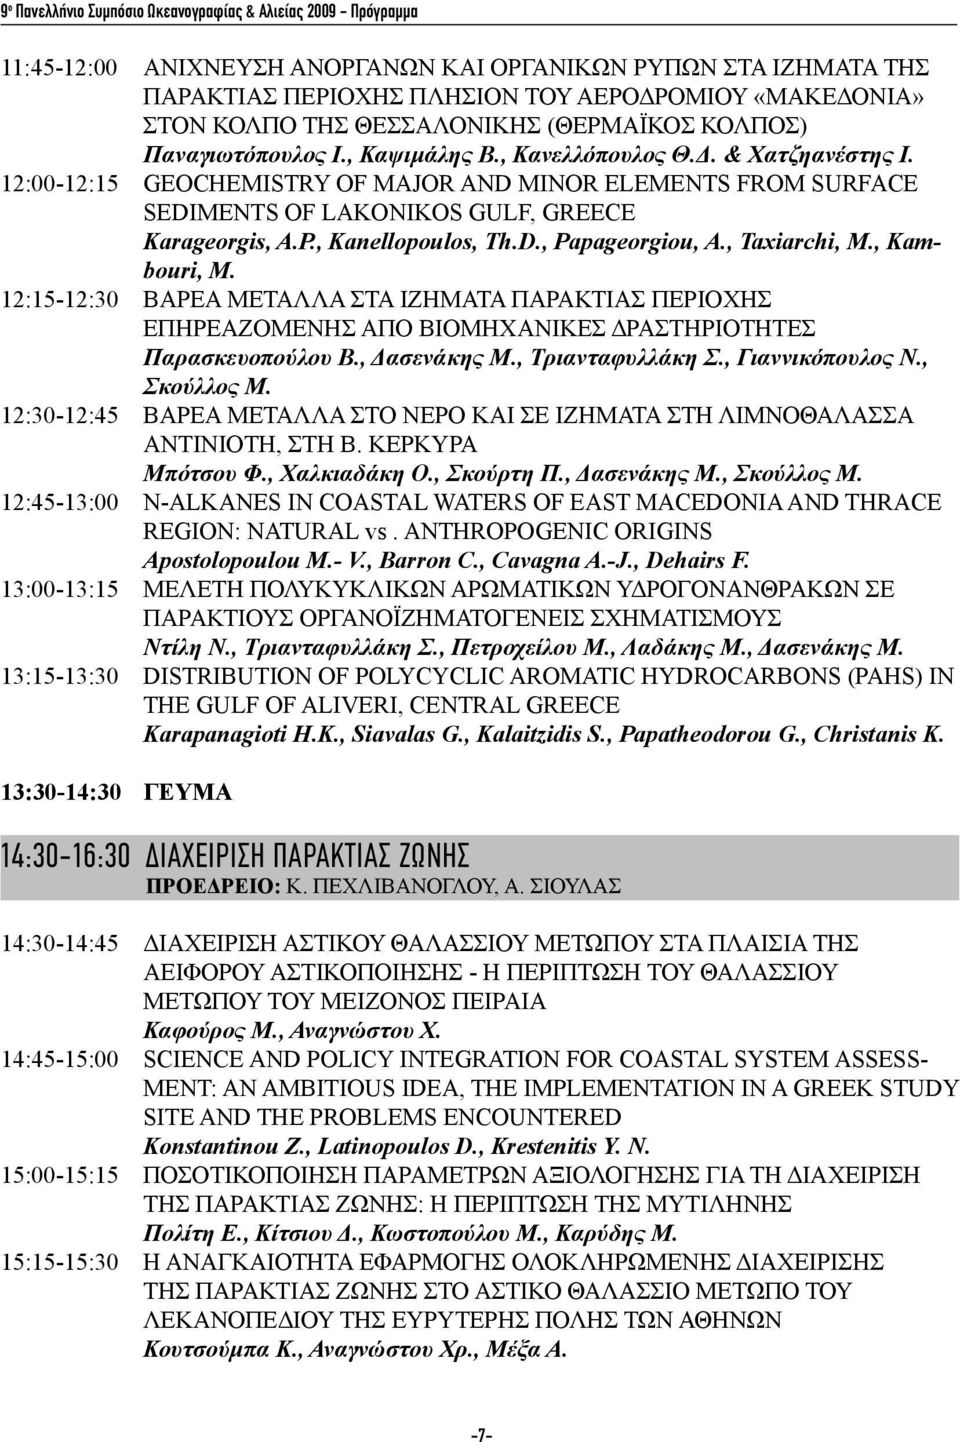 12:00-12:15 GEOCHEMISTRY OF MAJOR AND MINOR ELEMENTS FROM SURFACE SEDIΜENTS OF LAKONIKOS GULF, GREECE Karageorgis, A.P., Kanellopoulos, Th.D., Papageorgiou, A., Taxiarchi, M., Kambouri, M.